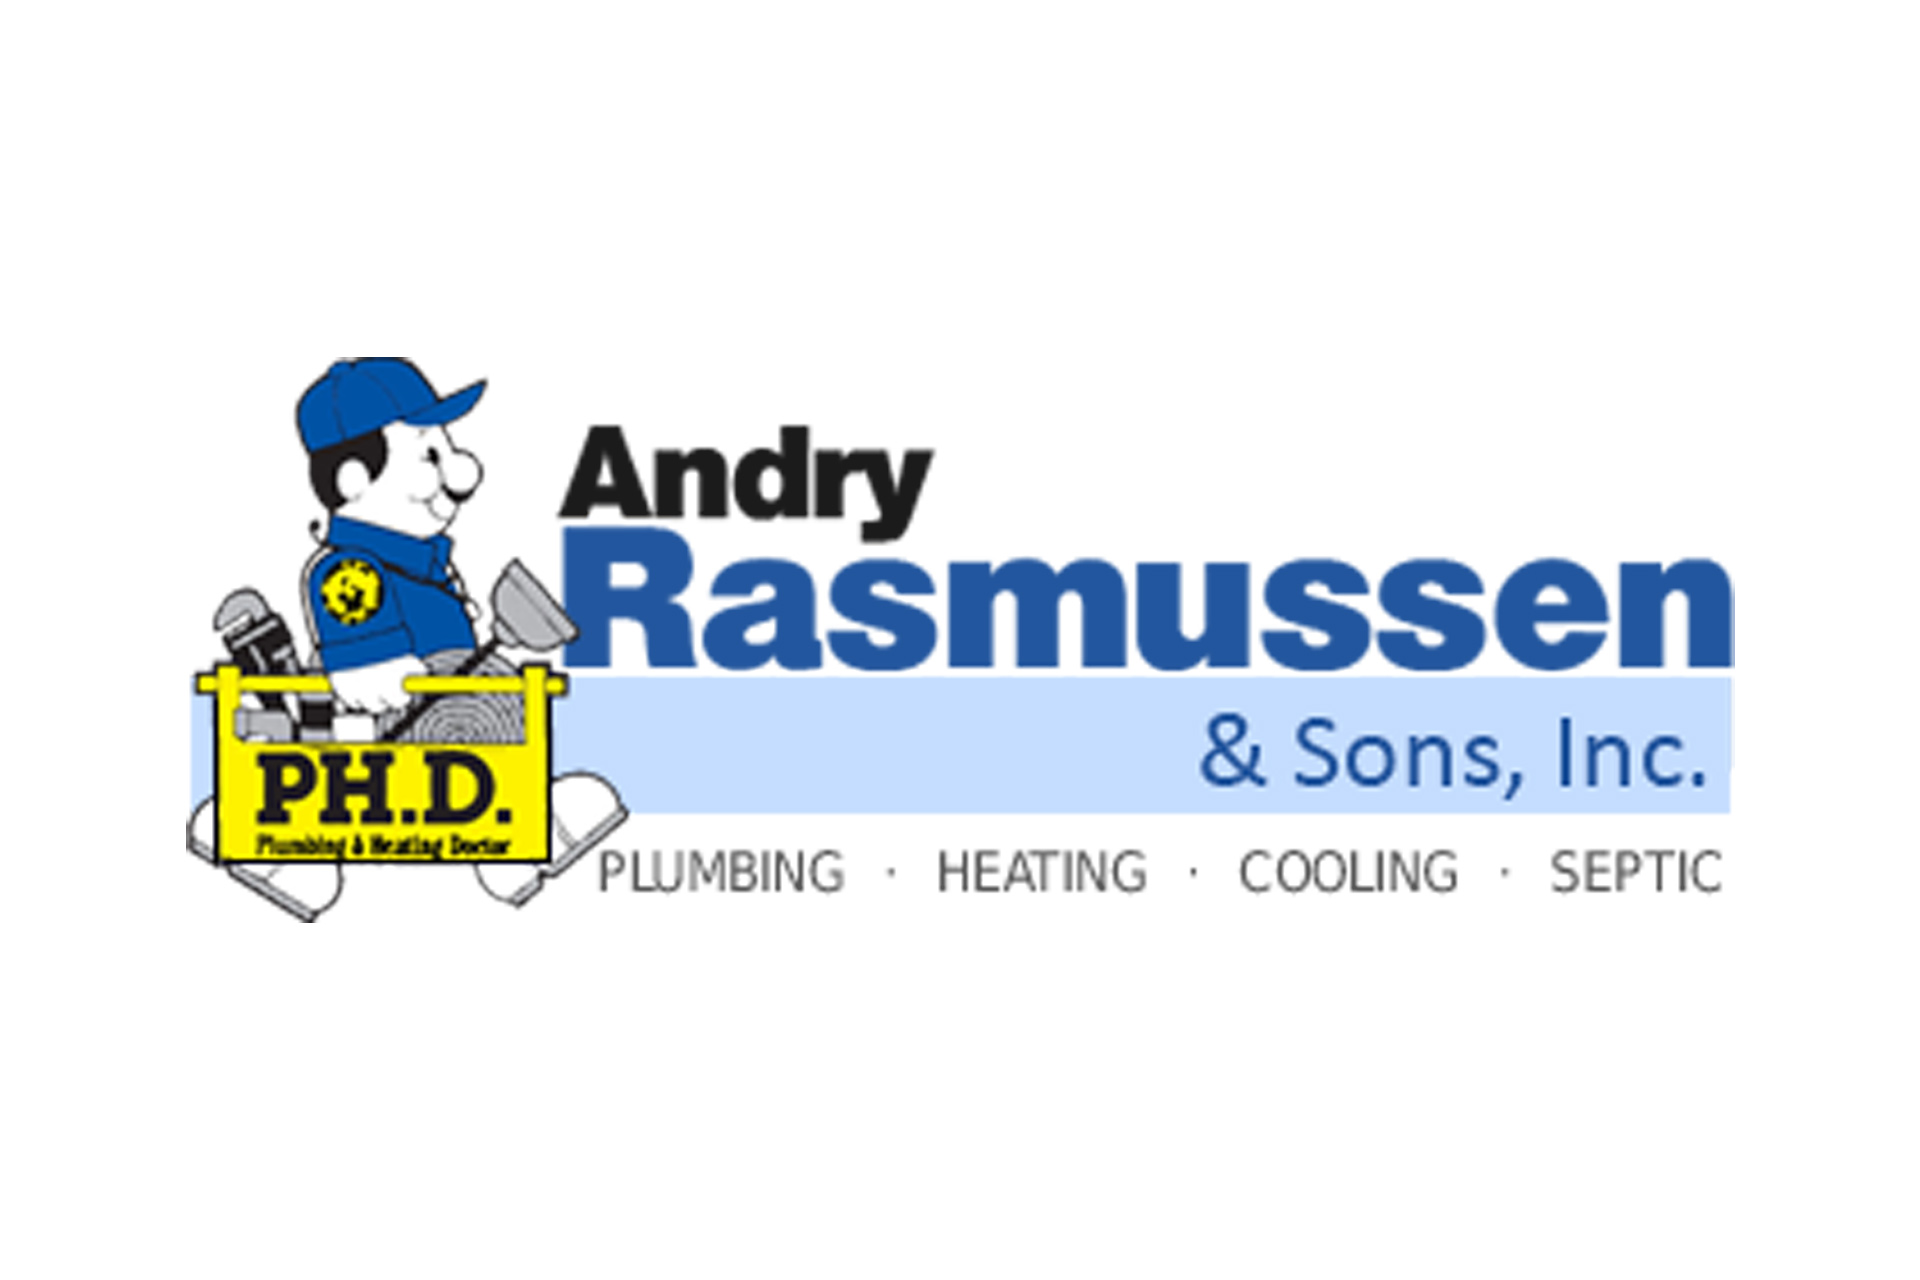 Andry Rasmussen and Sons